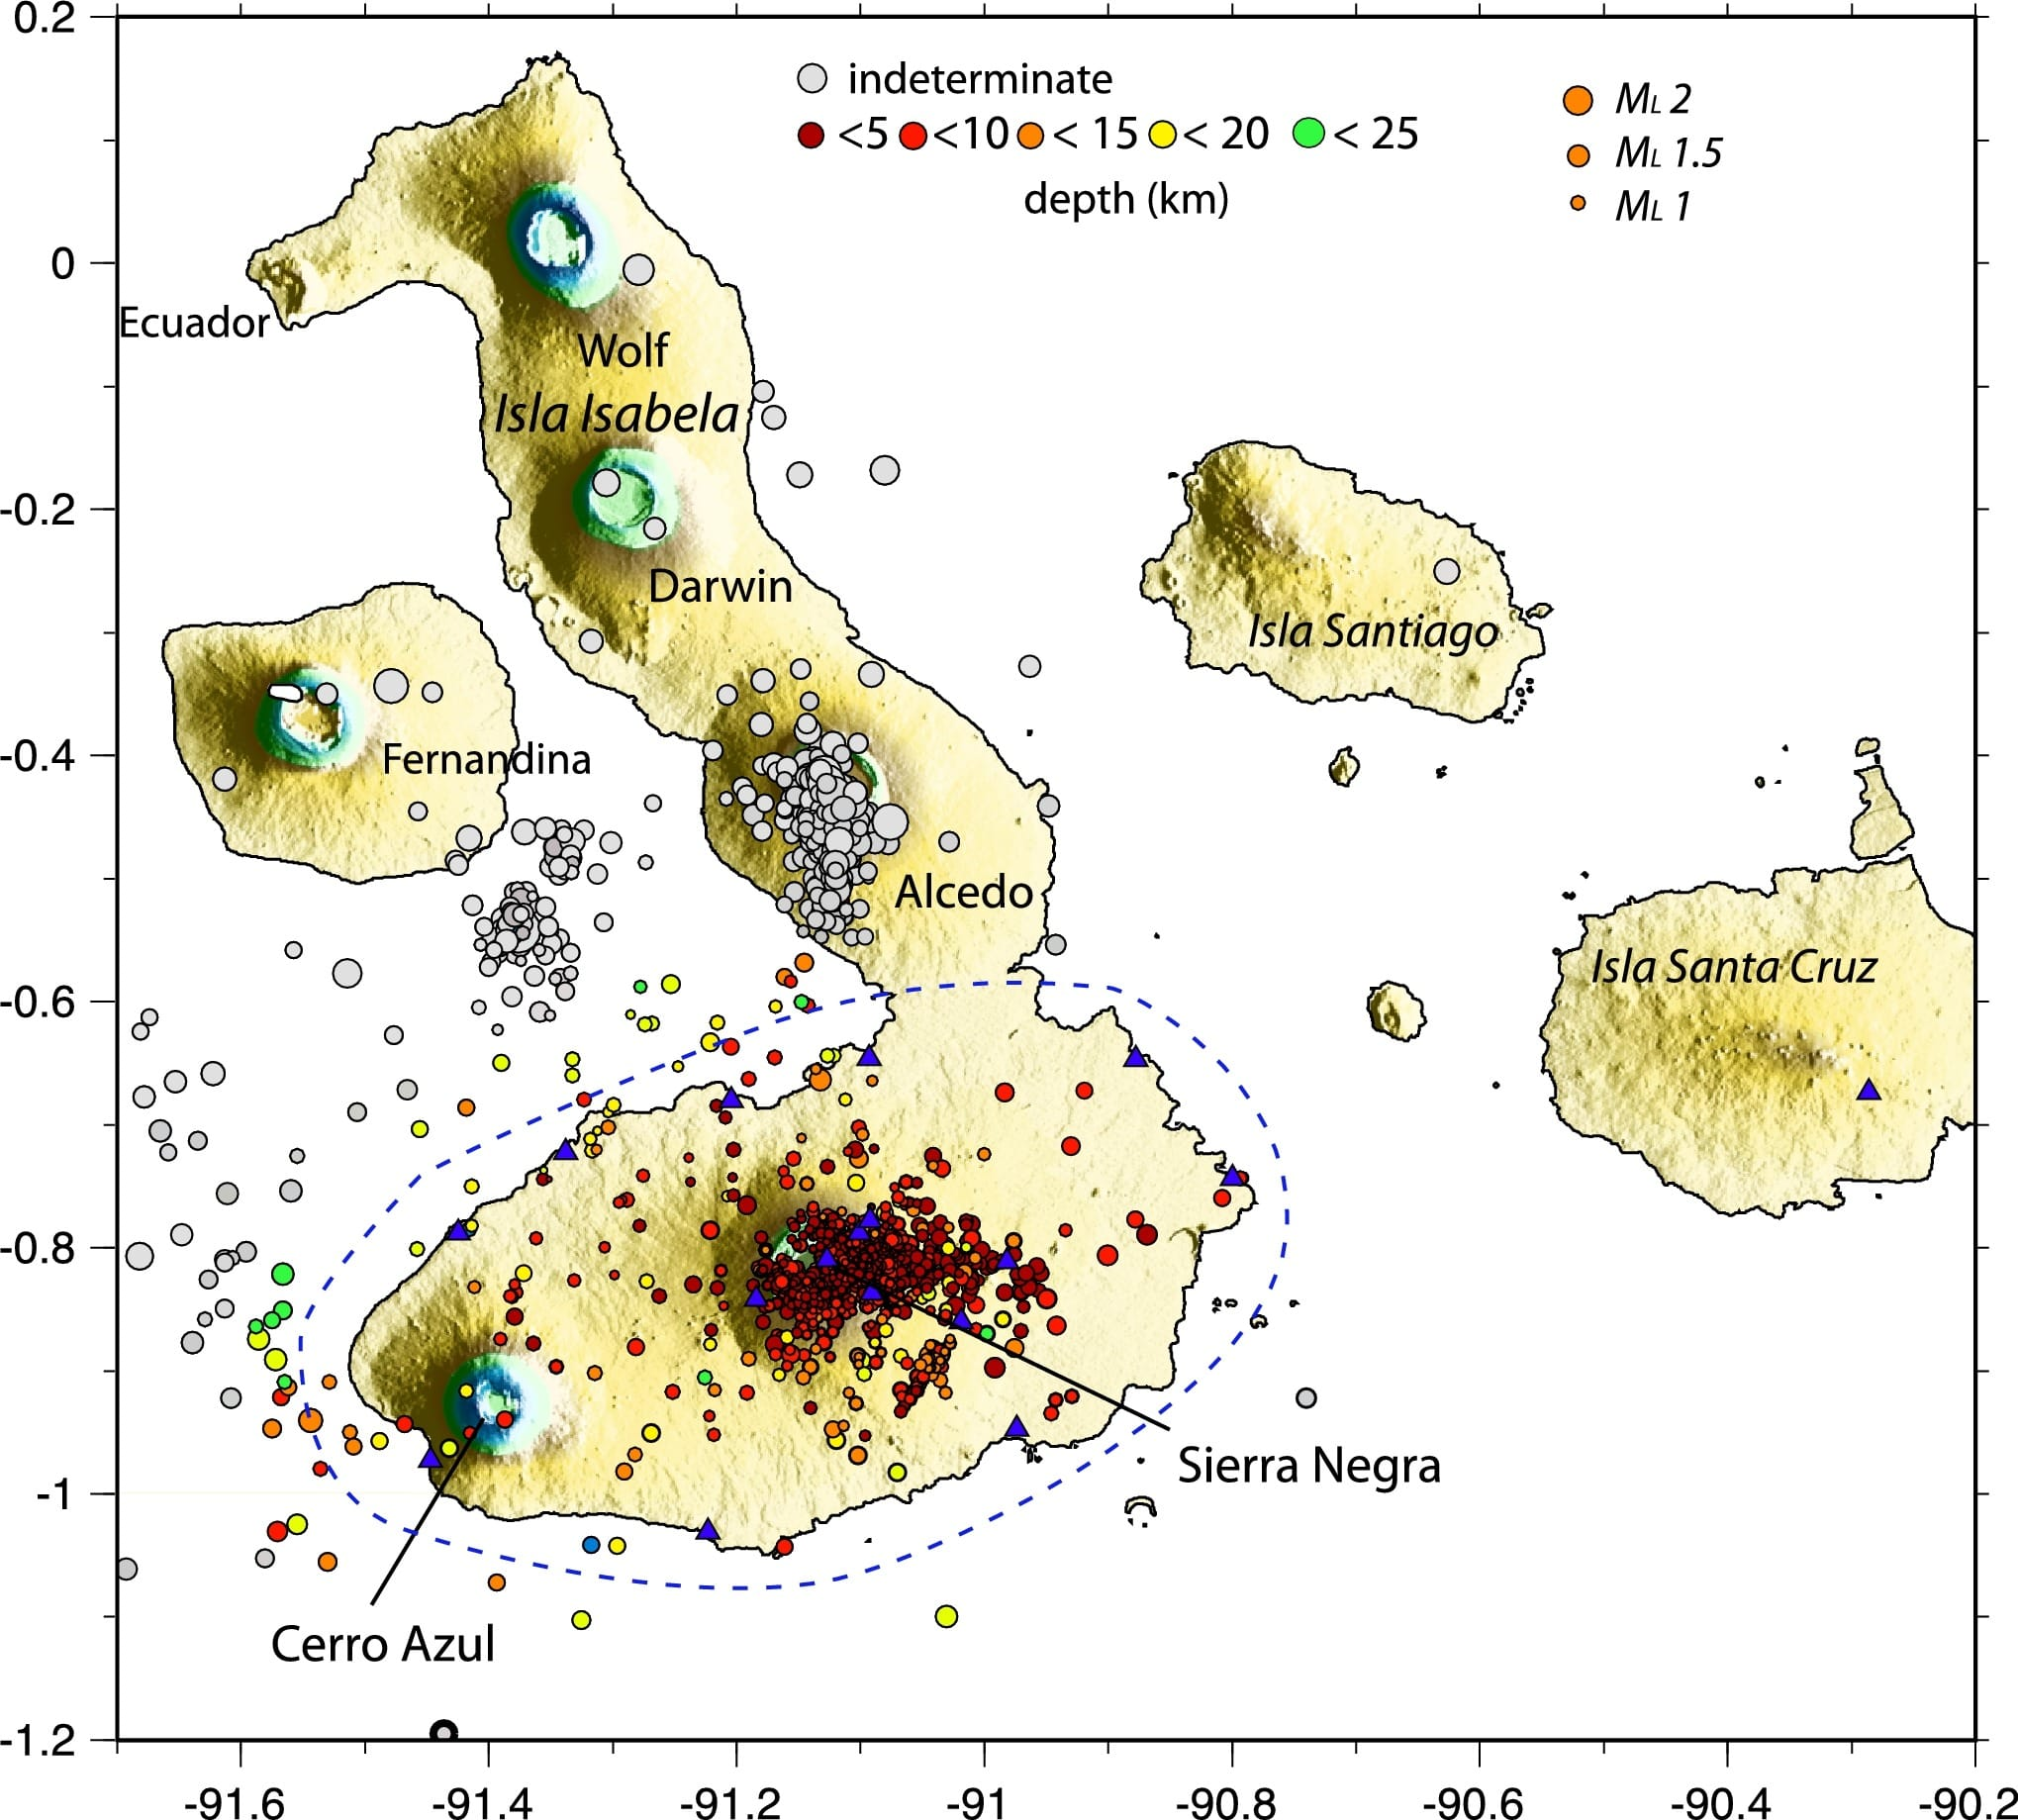 Earthquakes And Volcanoes Of The Galapagos Islands